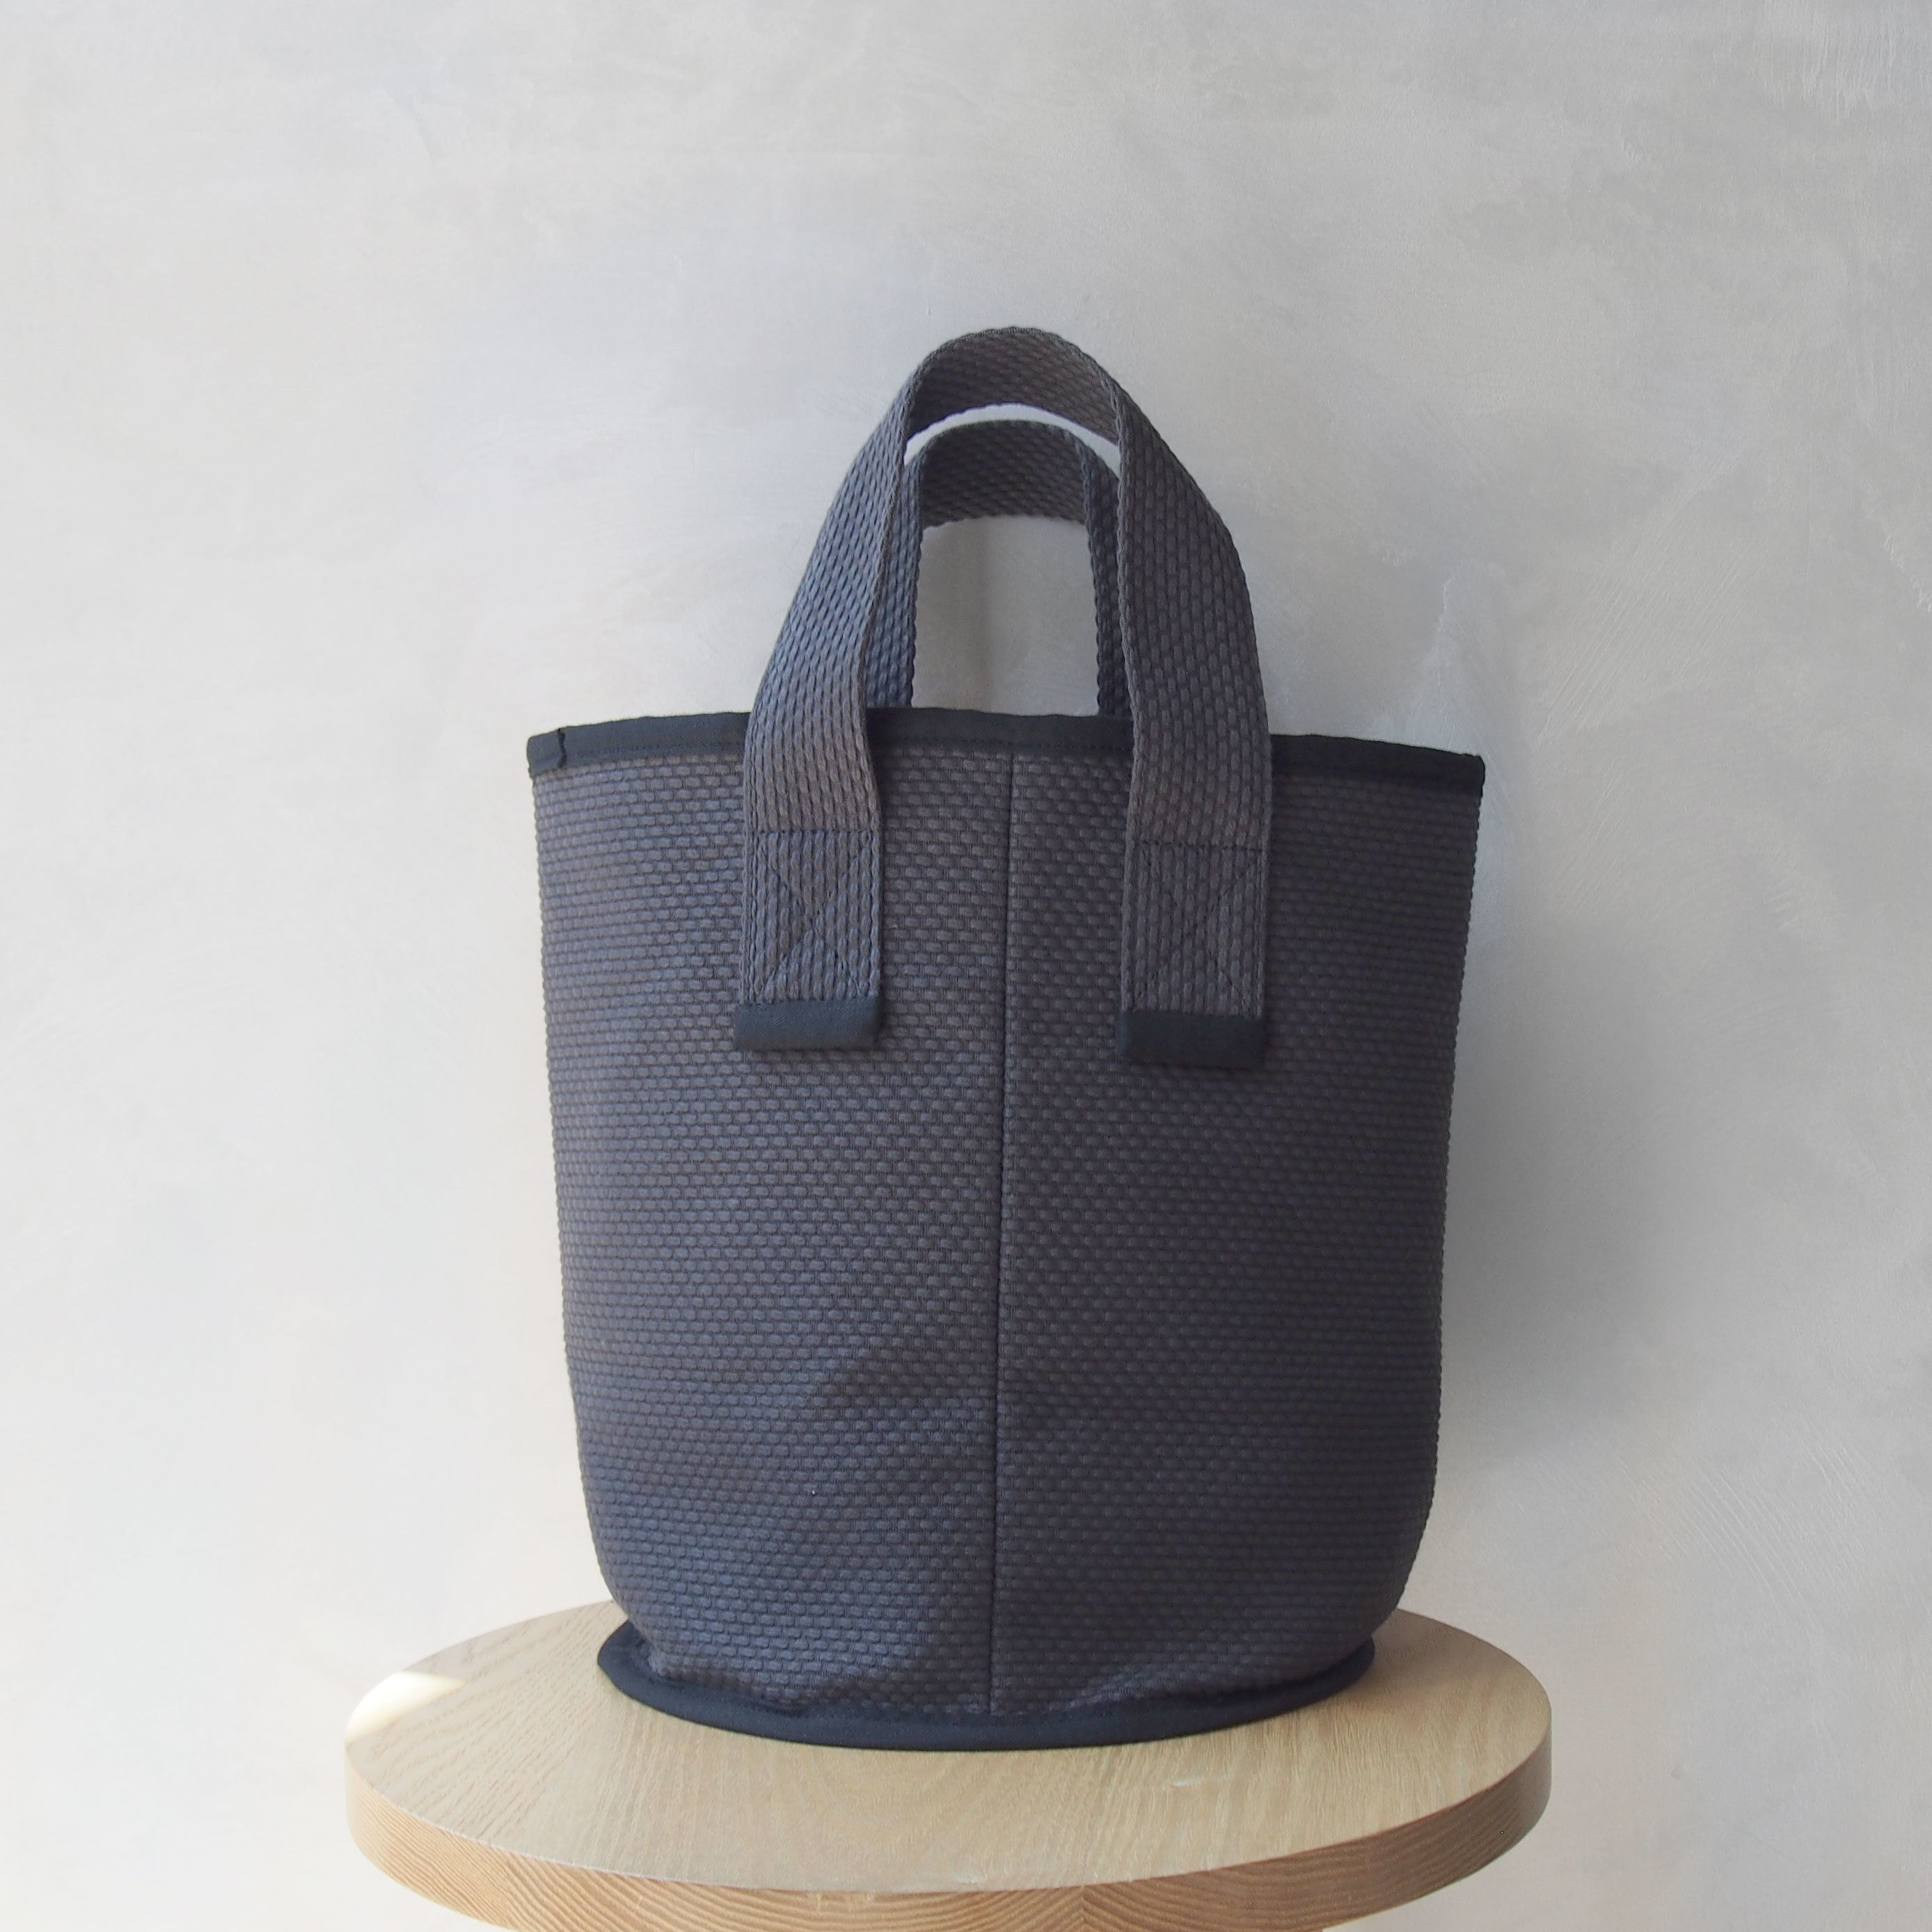 CaBas N°50 Laundry bag small Gray/Black